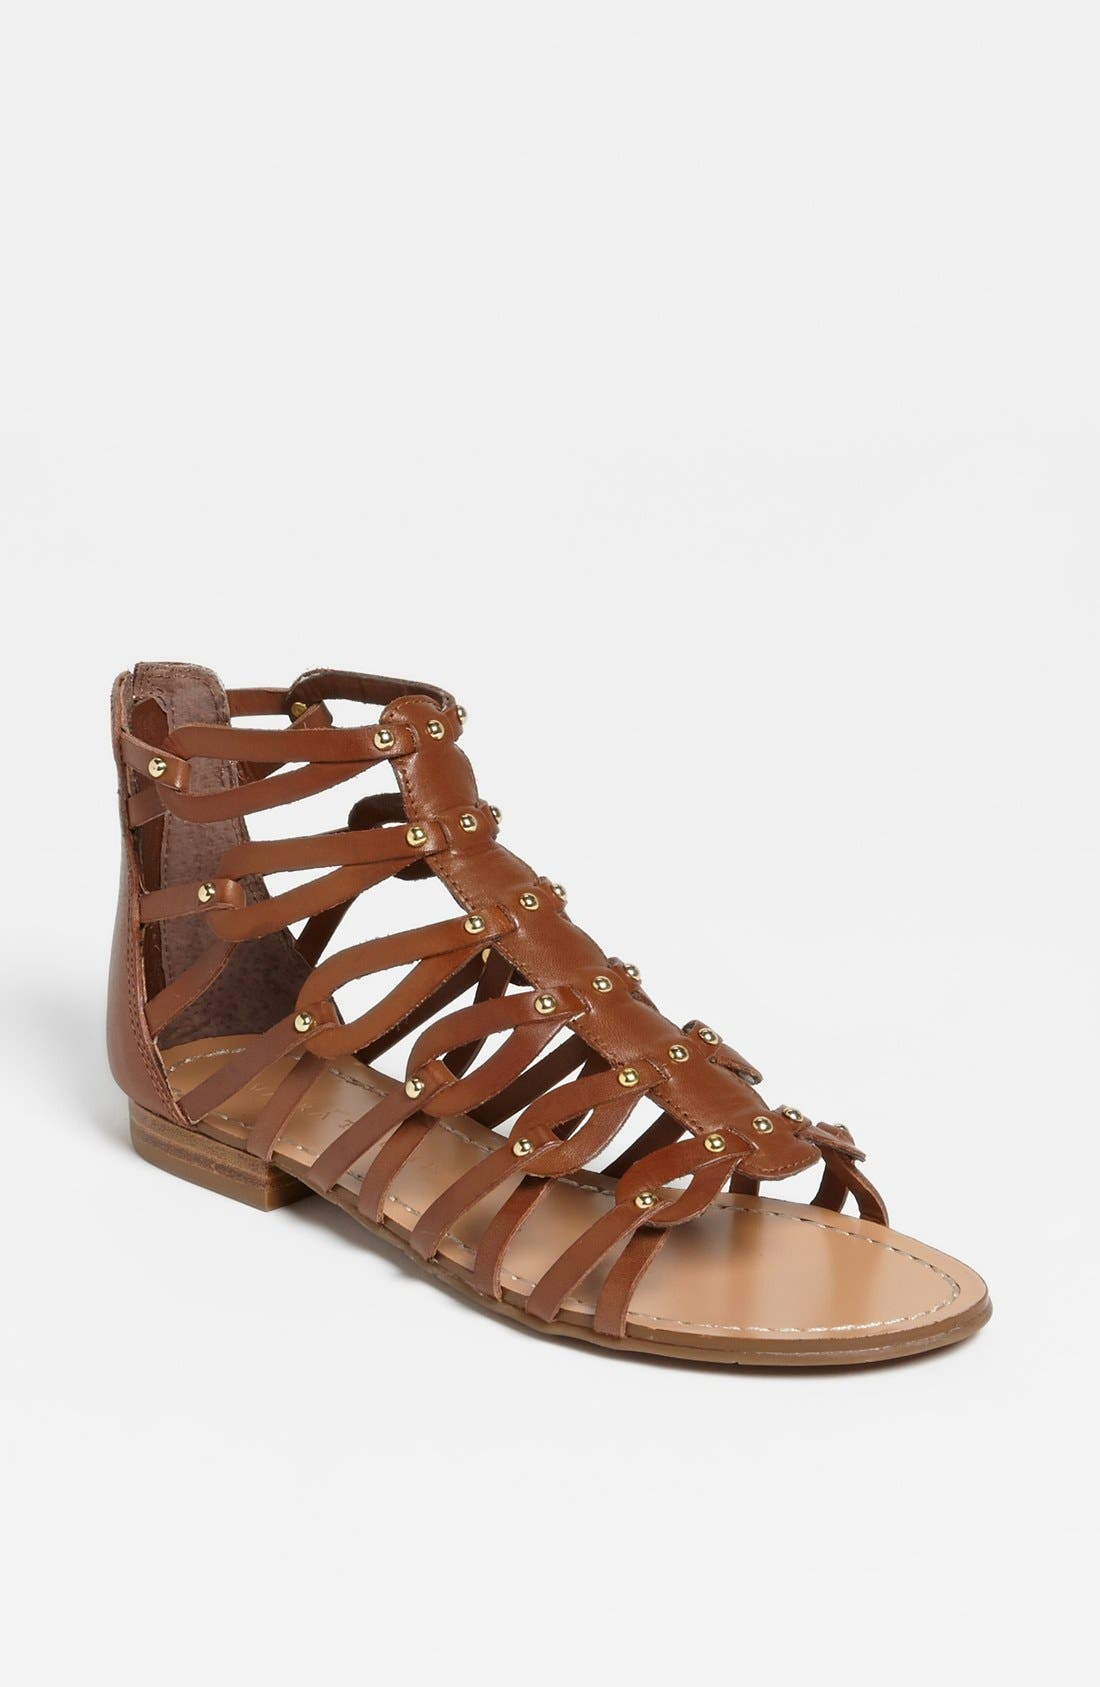 Alternate Image 1 Selected - Ivanka Trump 'Rene' Sandal